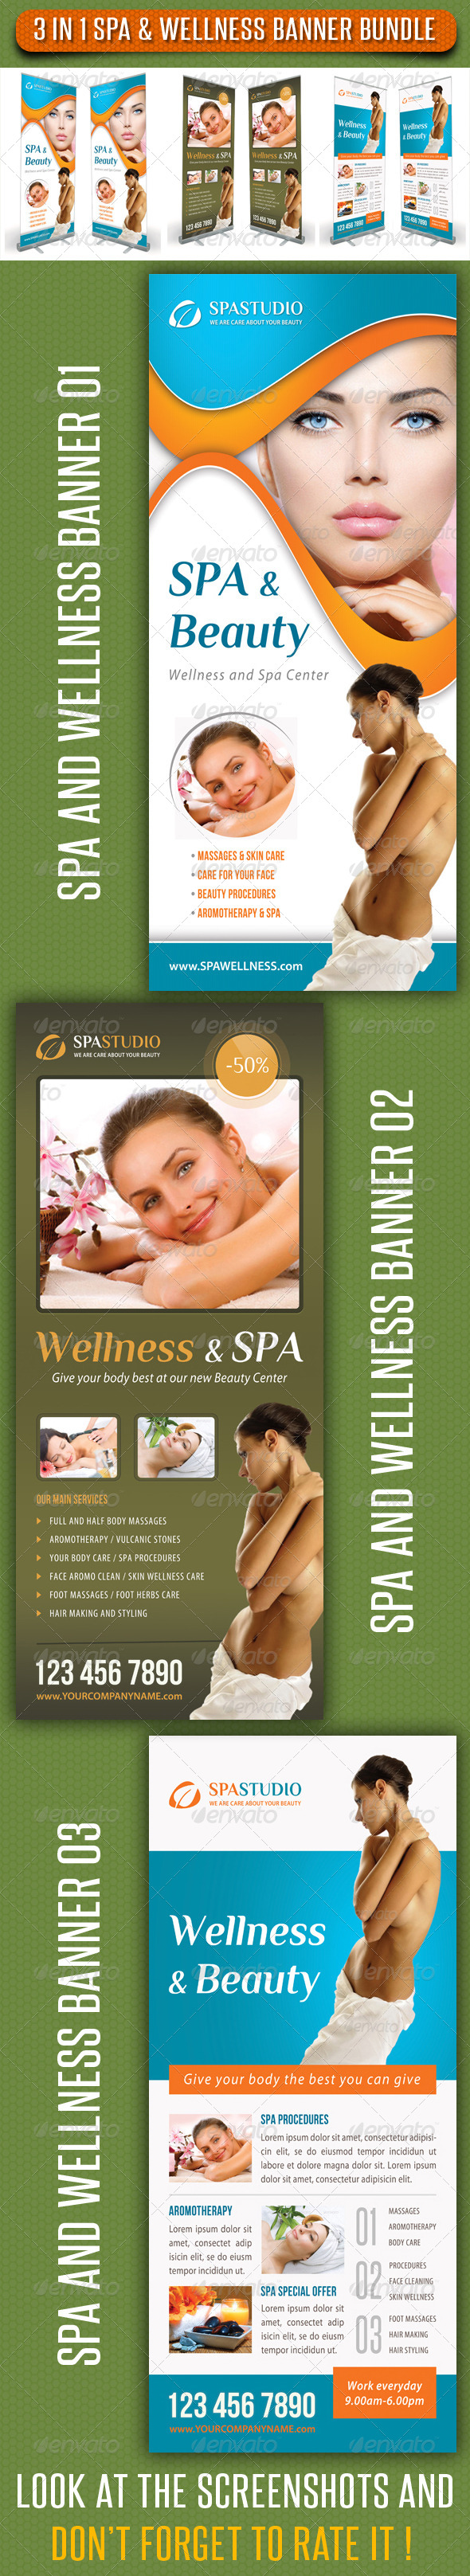 GraphicRiver 3 in 1 Spa Wellness Banner Bundle 07 8250287